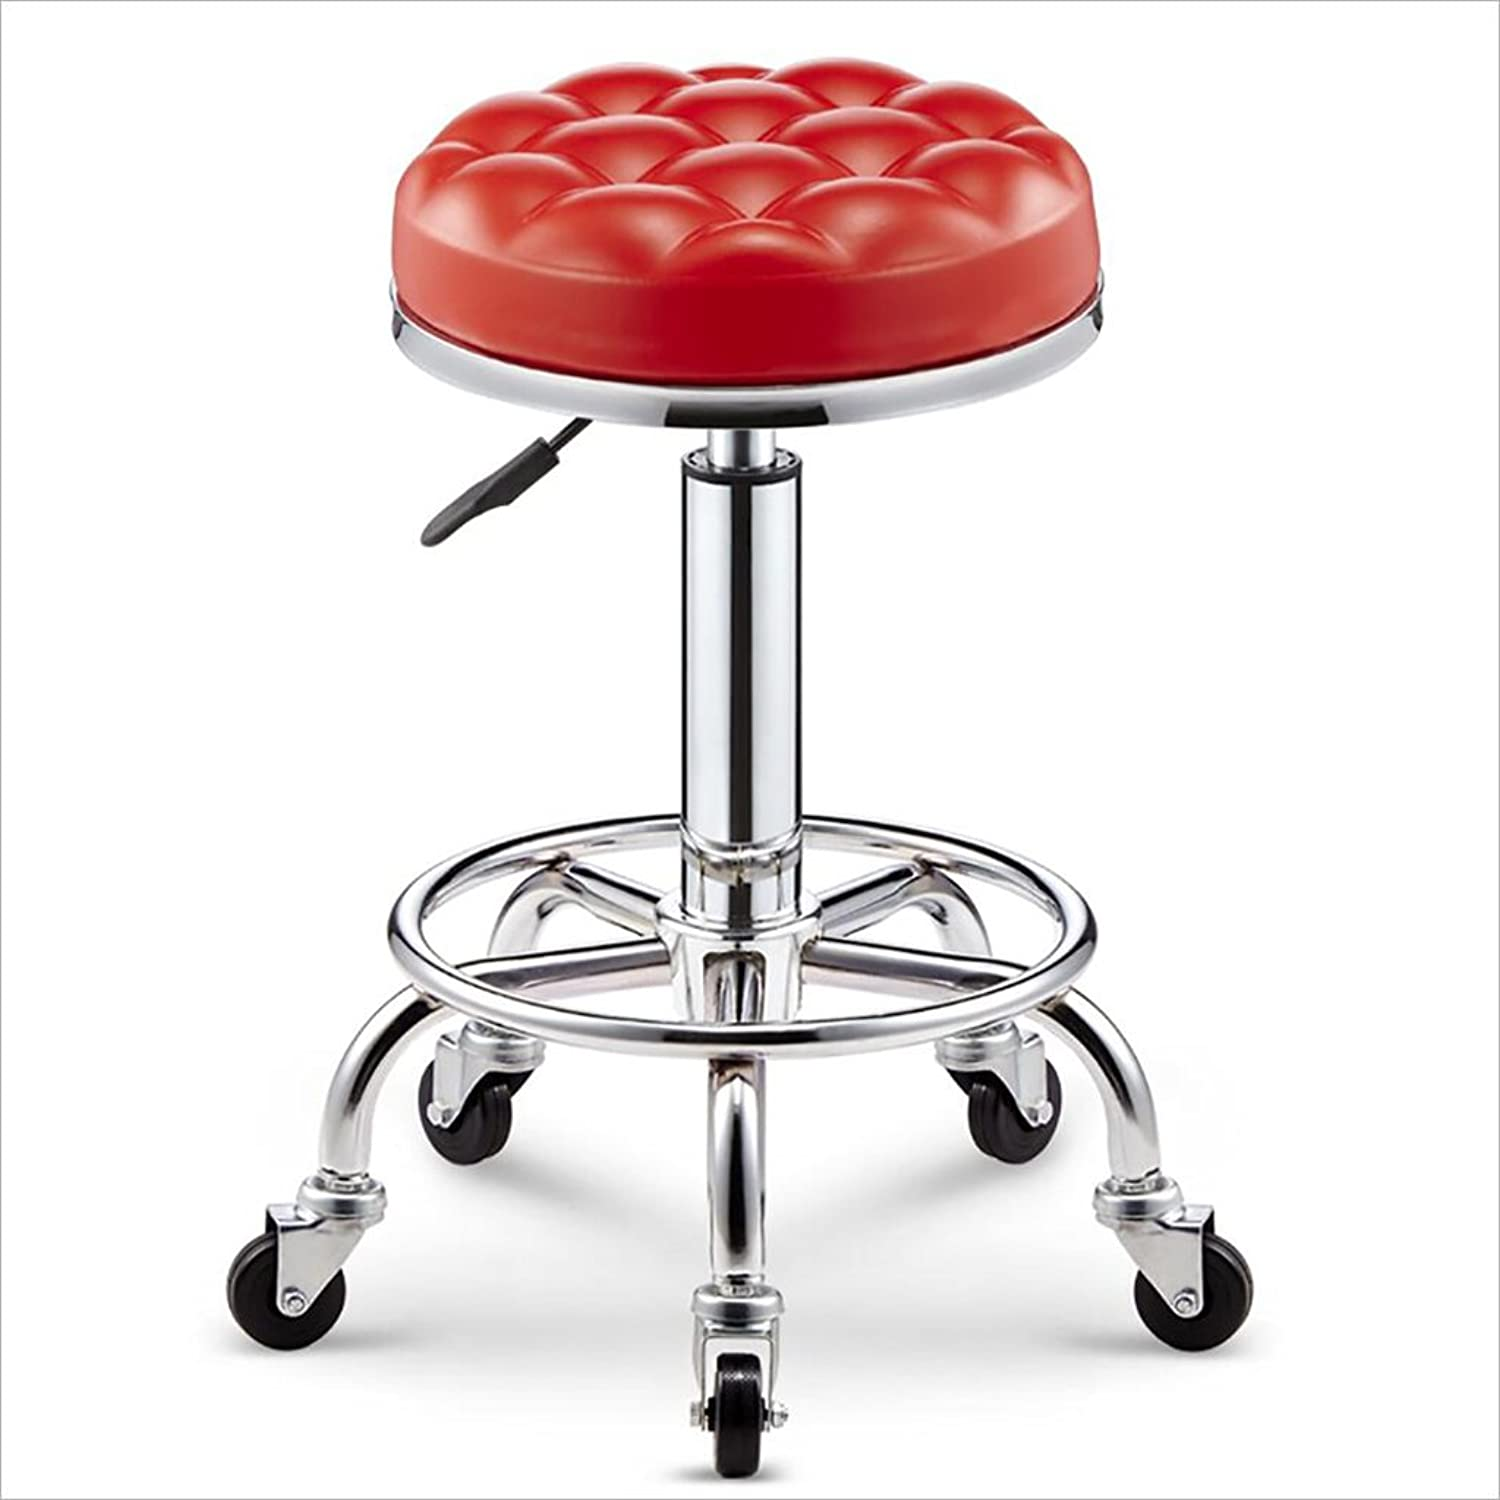 FUL-Swivel Chair Beauty Stool Barber Shop Chair Hairdressing Stool redating Lift Stool Multi color 47cm59cm (color   A-4)